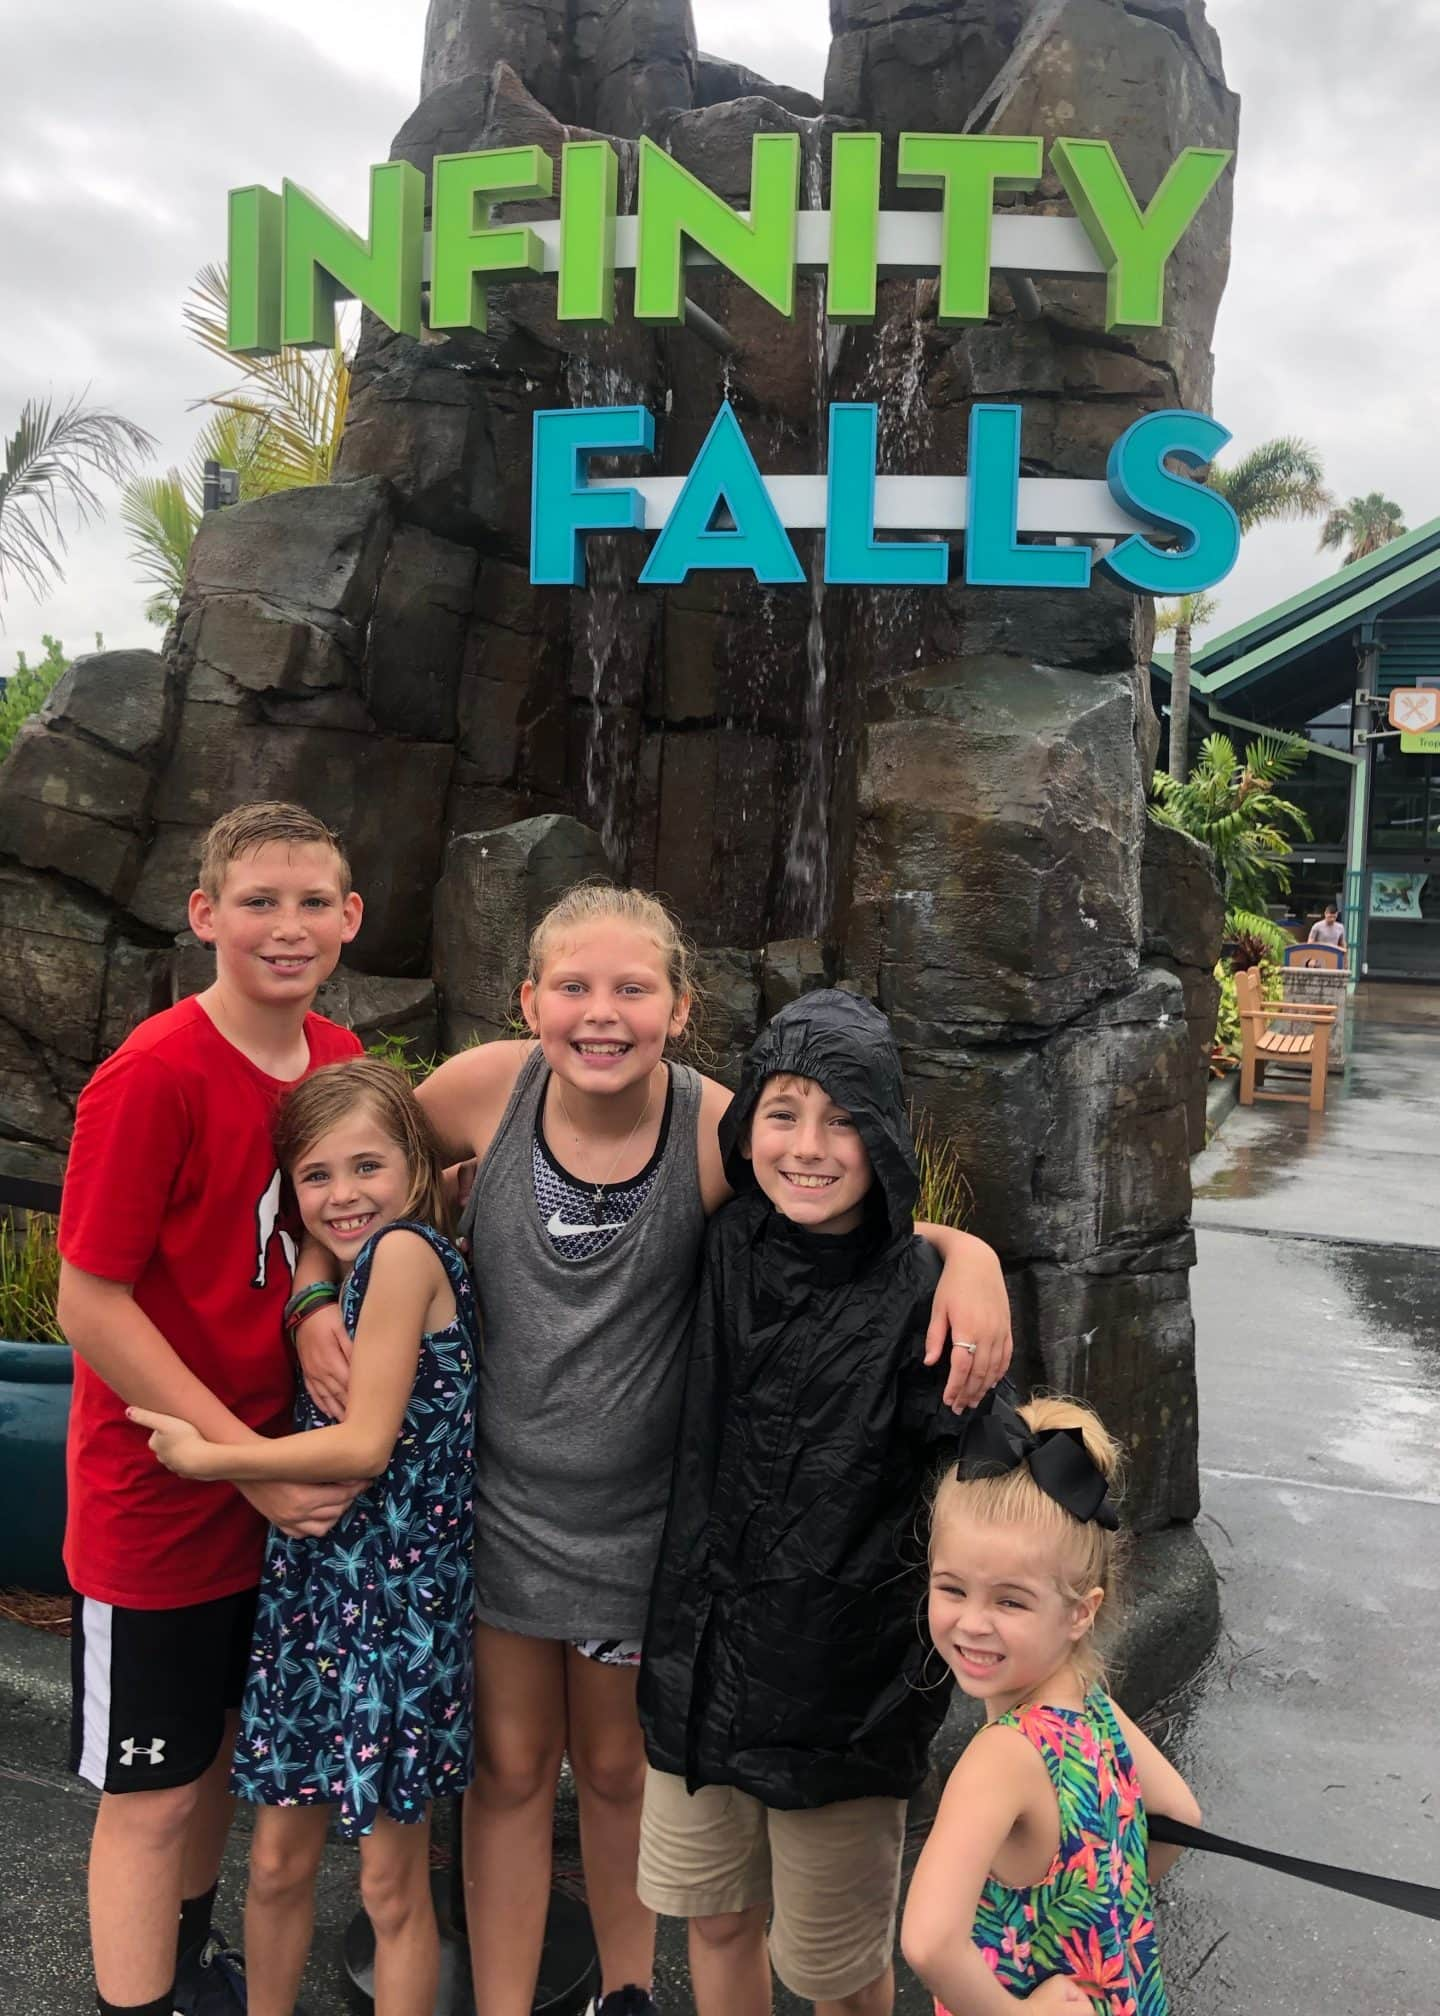 infinity falls ride at sea world Orlando